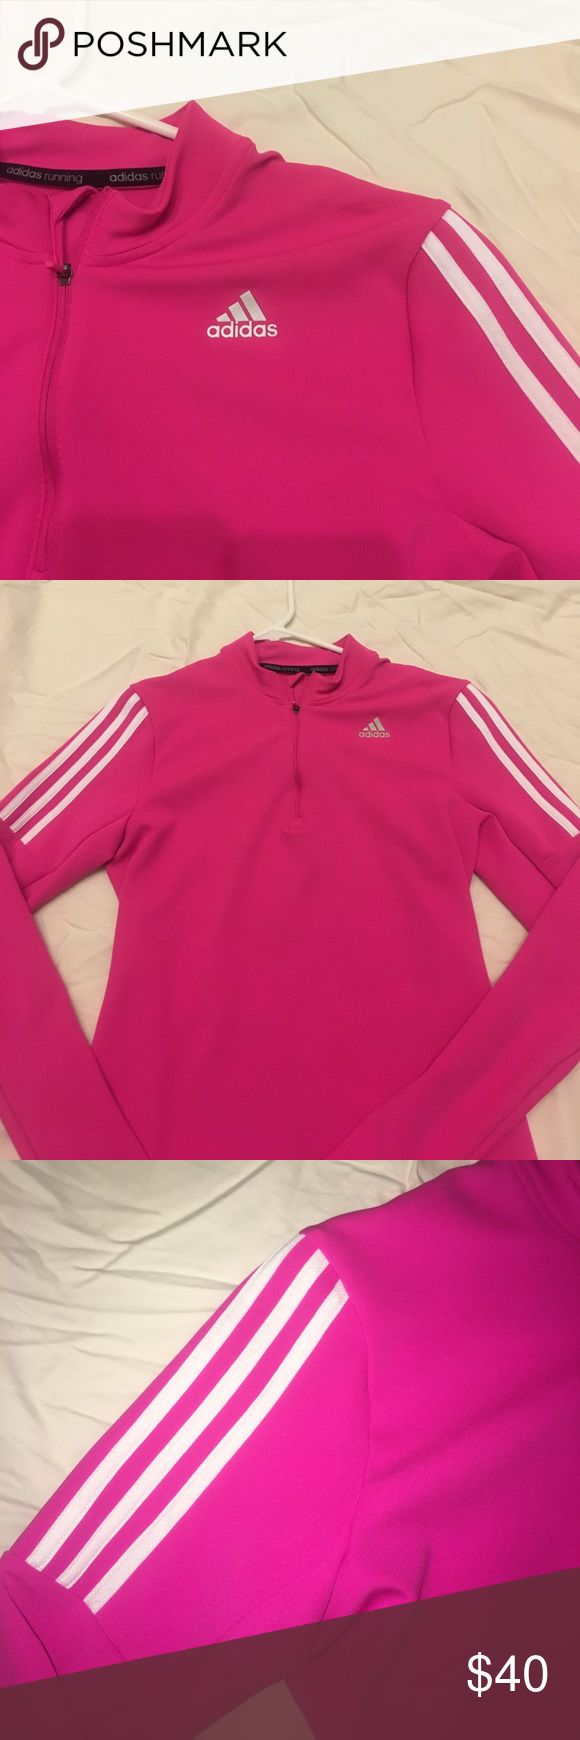 ADIDAS Zip Up Jacket Lightweight. Stretchy material. Worn once. No flaws. Perfect condition adidas Jackets & Coats